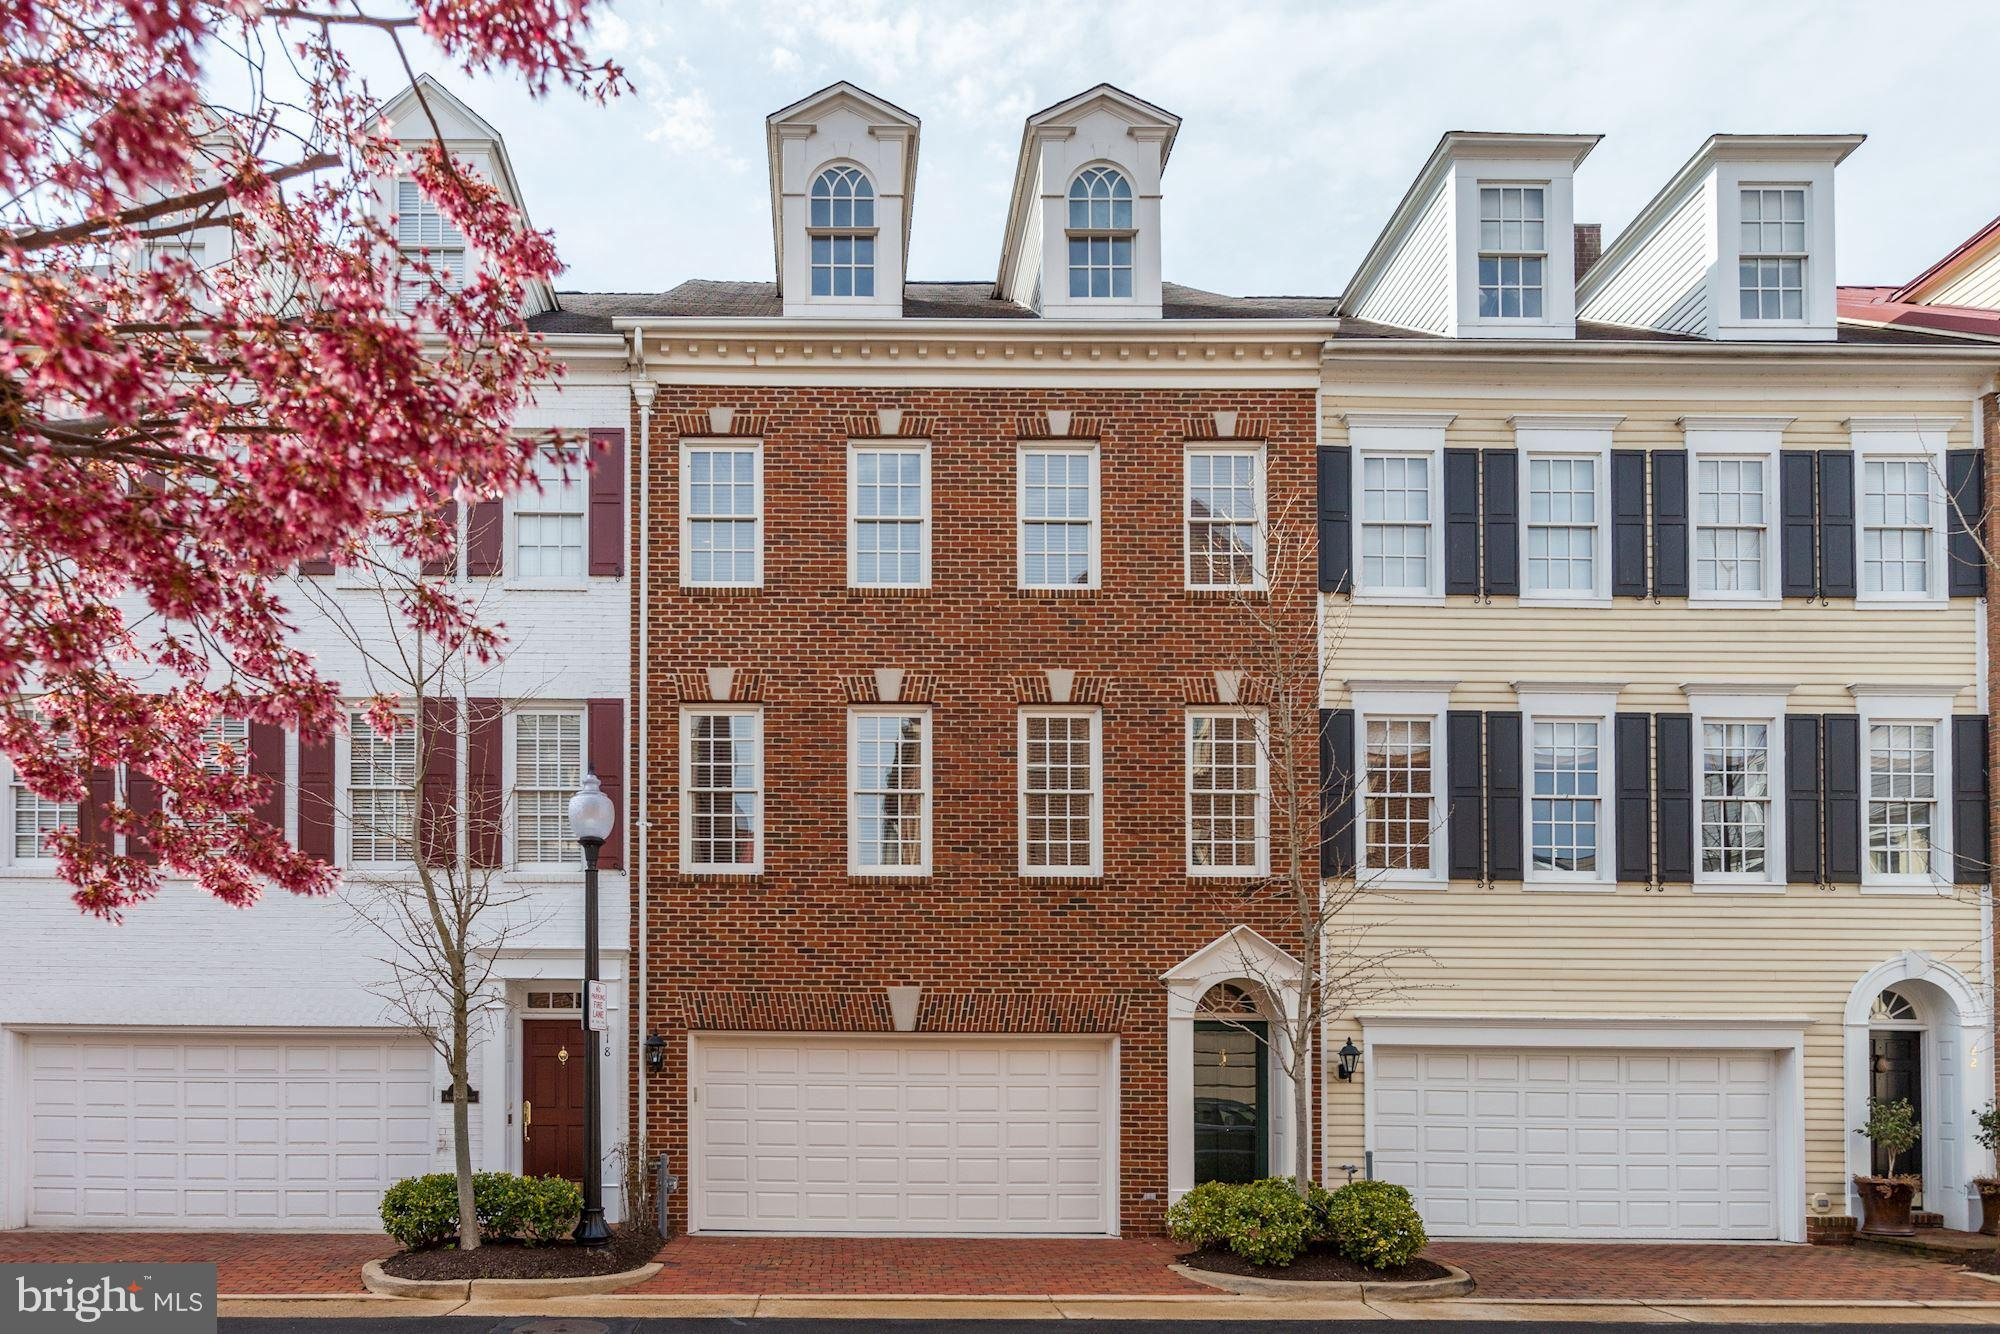 FABULOUS NEW PRICE! Spacious & sun-filled 3BR/3.5BA townhome offering approx. 2900+ SF of luxurious living with view of the Potomac right from the kitchen! Master Suite w/ cathedral ceilings, fp, balcony, 2 walk-in-closets, and master bath w/ double vanity, soaking tub + separate shower. 2nd upper level w/ BR, bath + sauna. Lower Level family room w/ wine cooler + fridge, fp, patio, + 2-car gar.